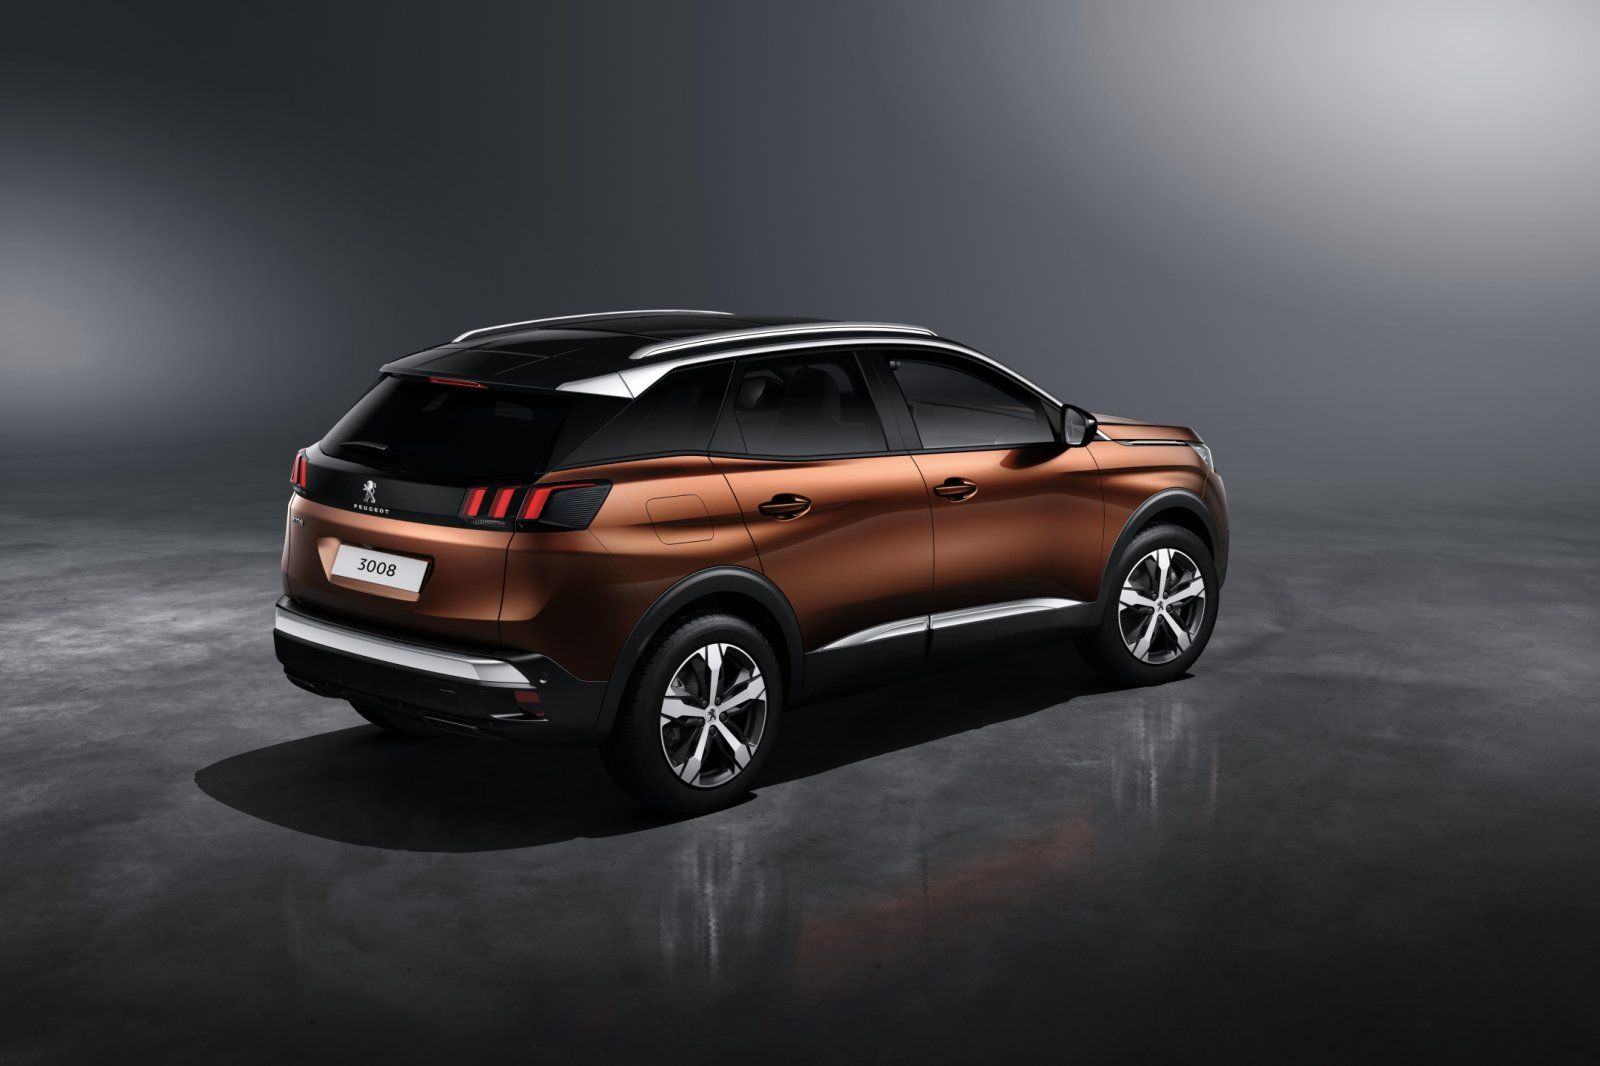 Zum zum auto electric cars new peugeot 3008 suv peugeot is announcing the new peugeot 3008 suv its most advanced compact suv